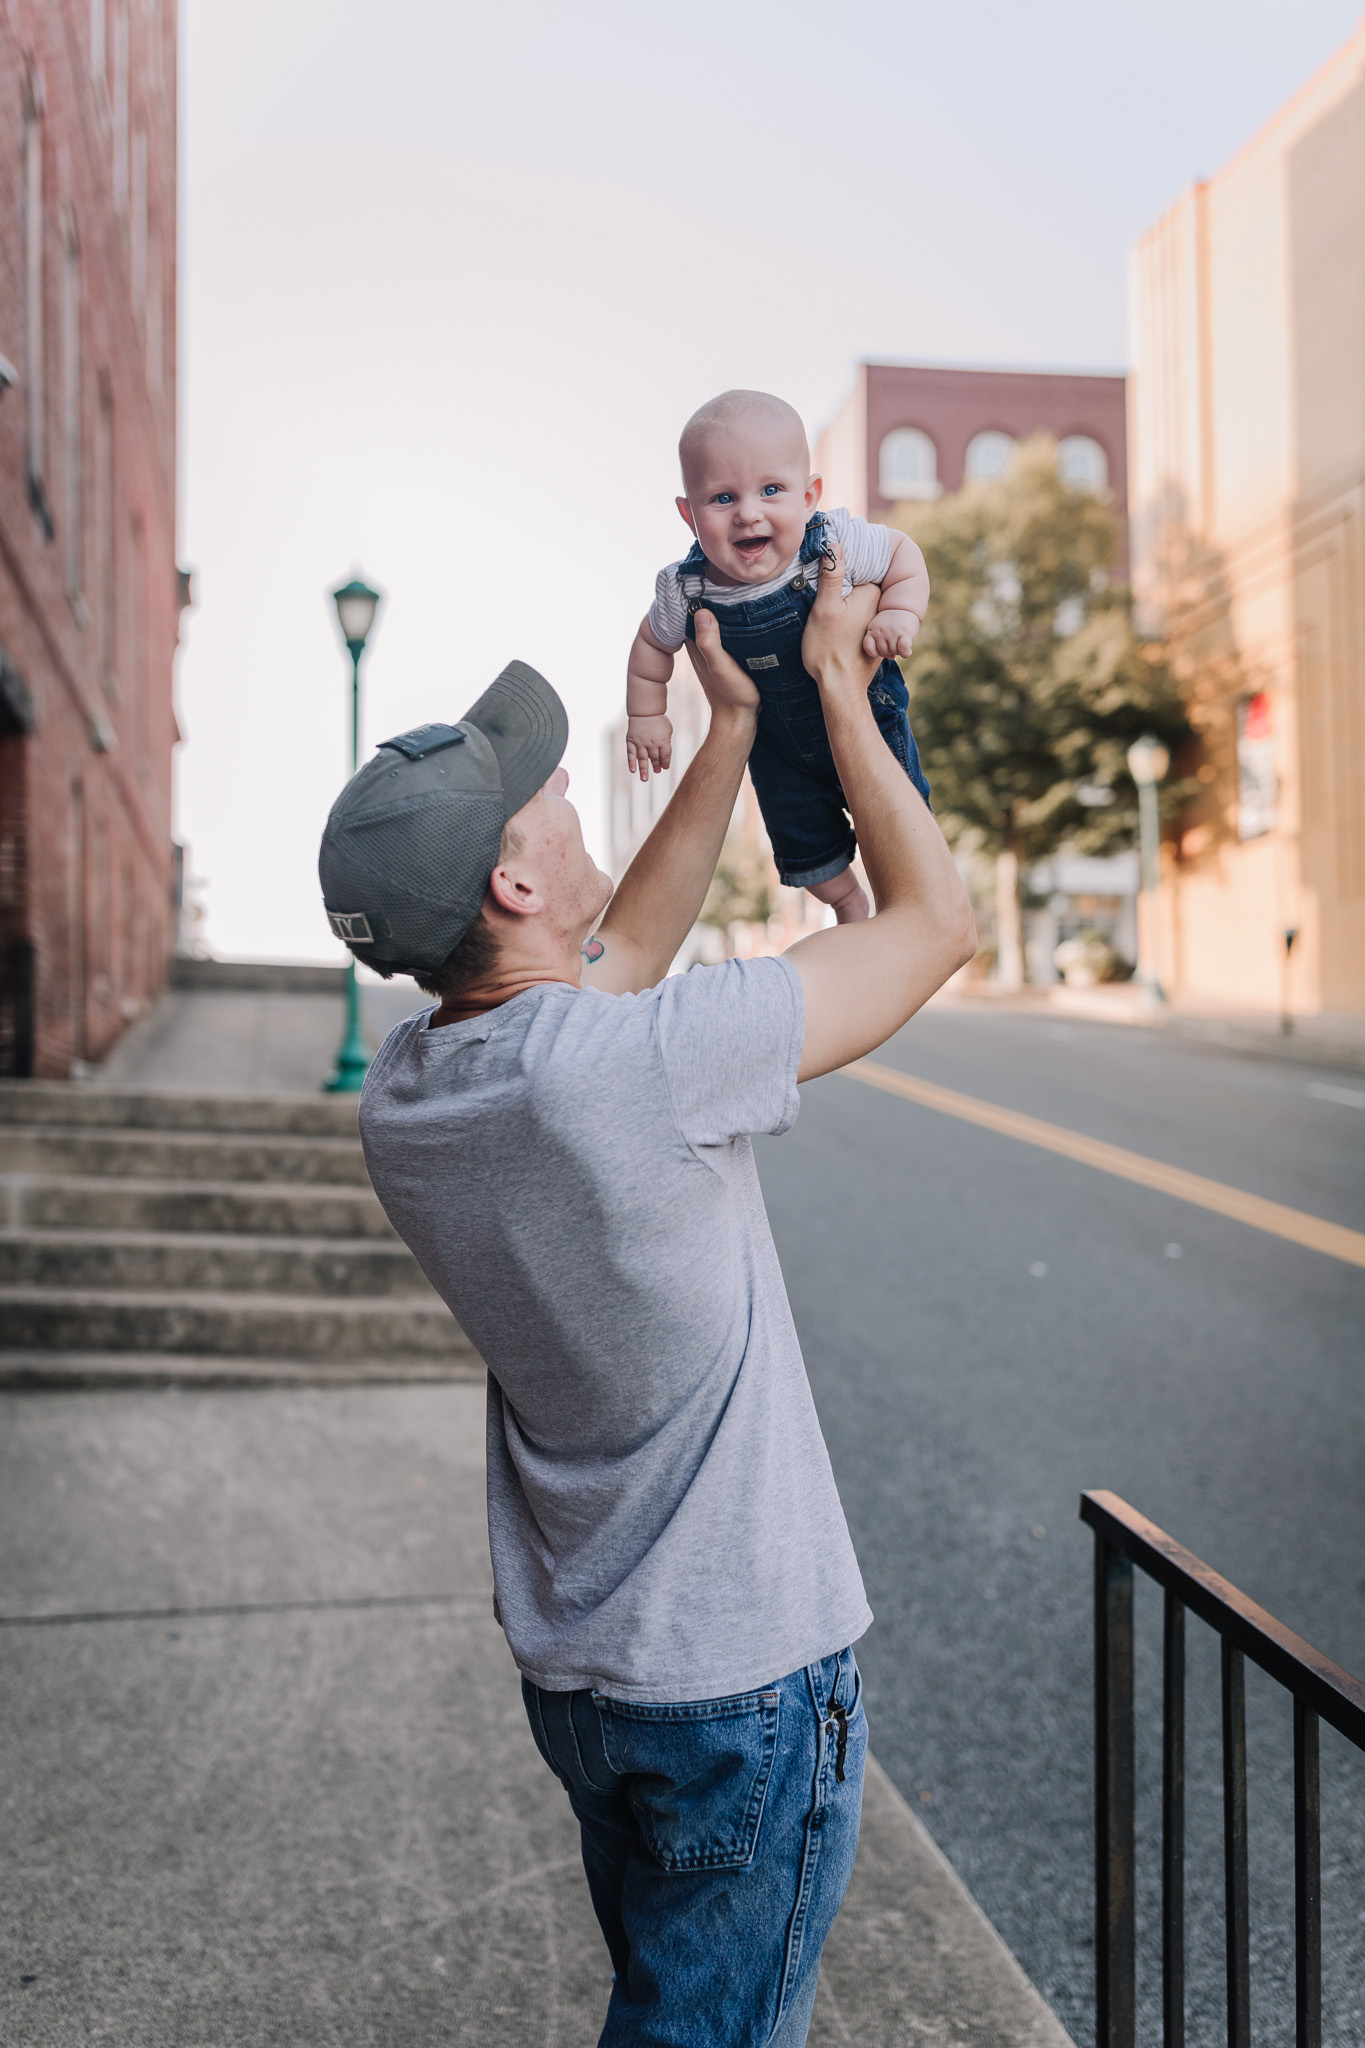 dad playing with baby boy